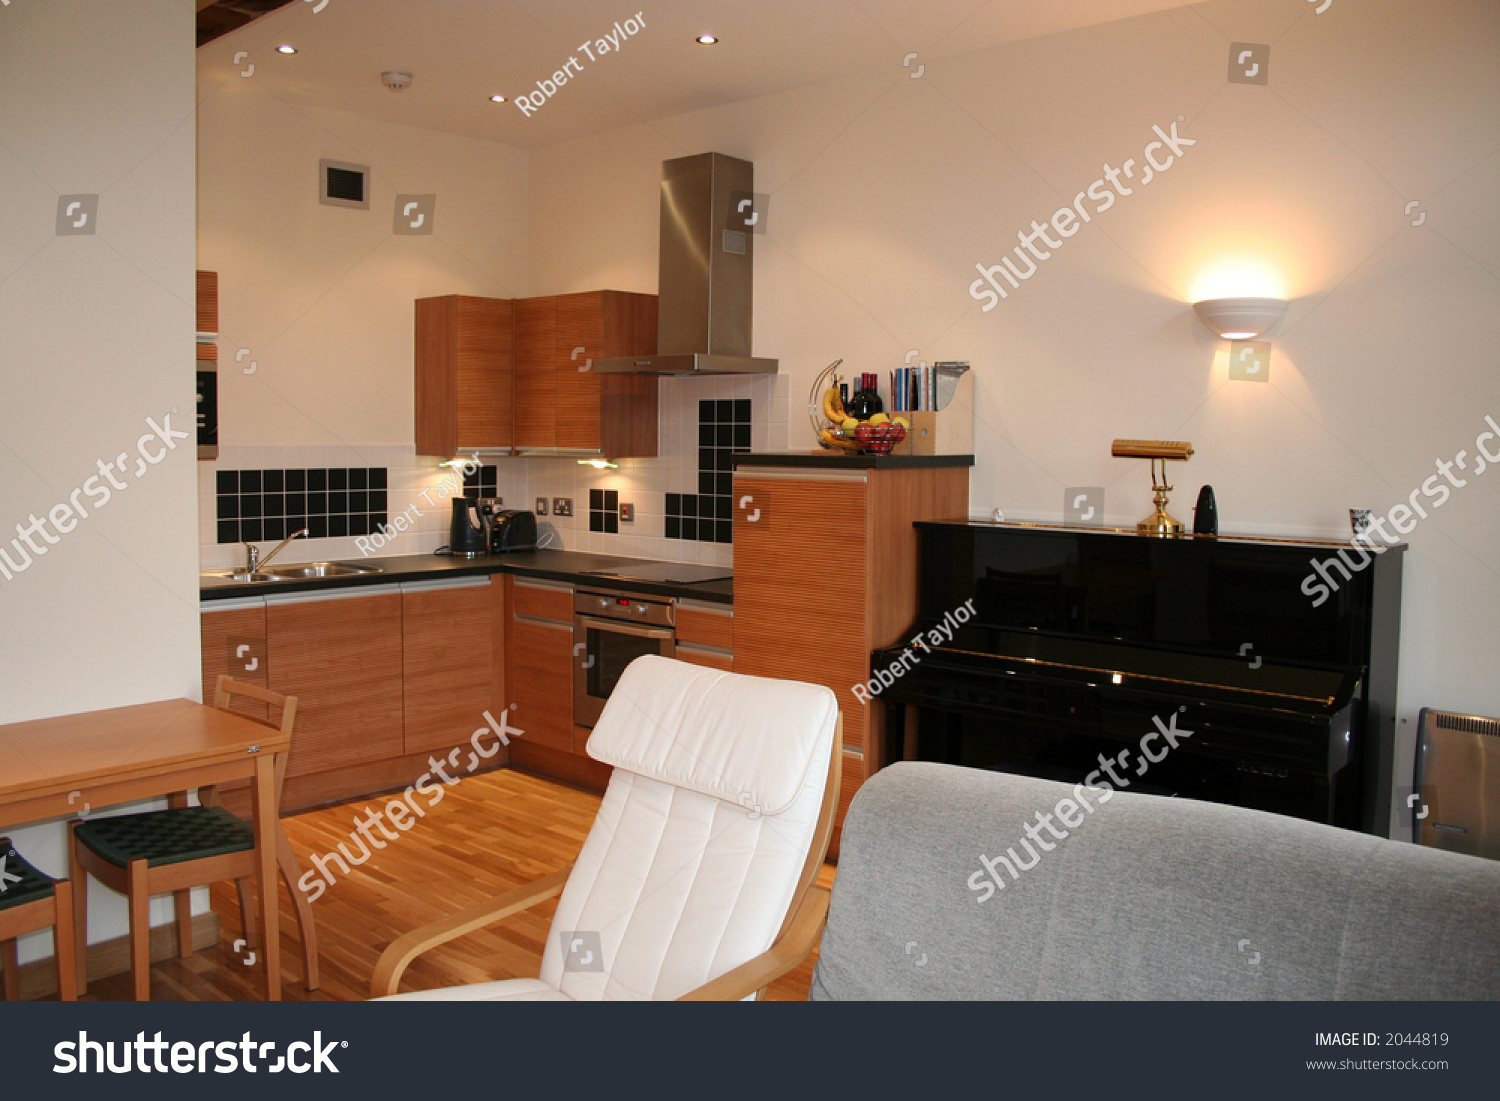 Kitchen Diner Apartment Showing Kitchen Diner Interior Upright Stock Photo